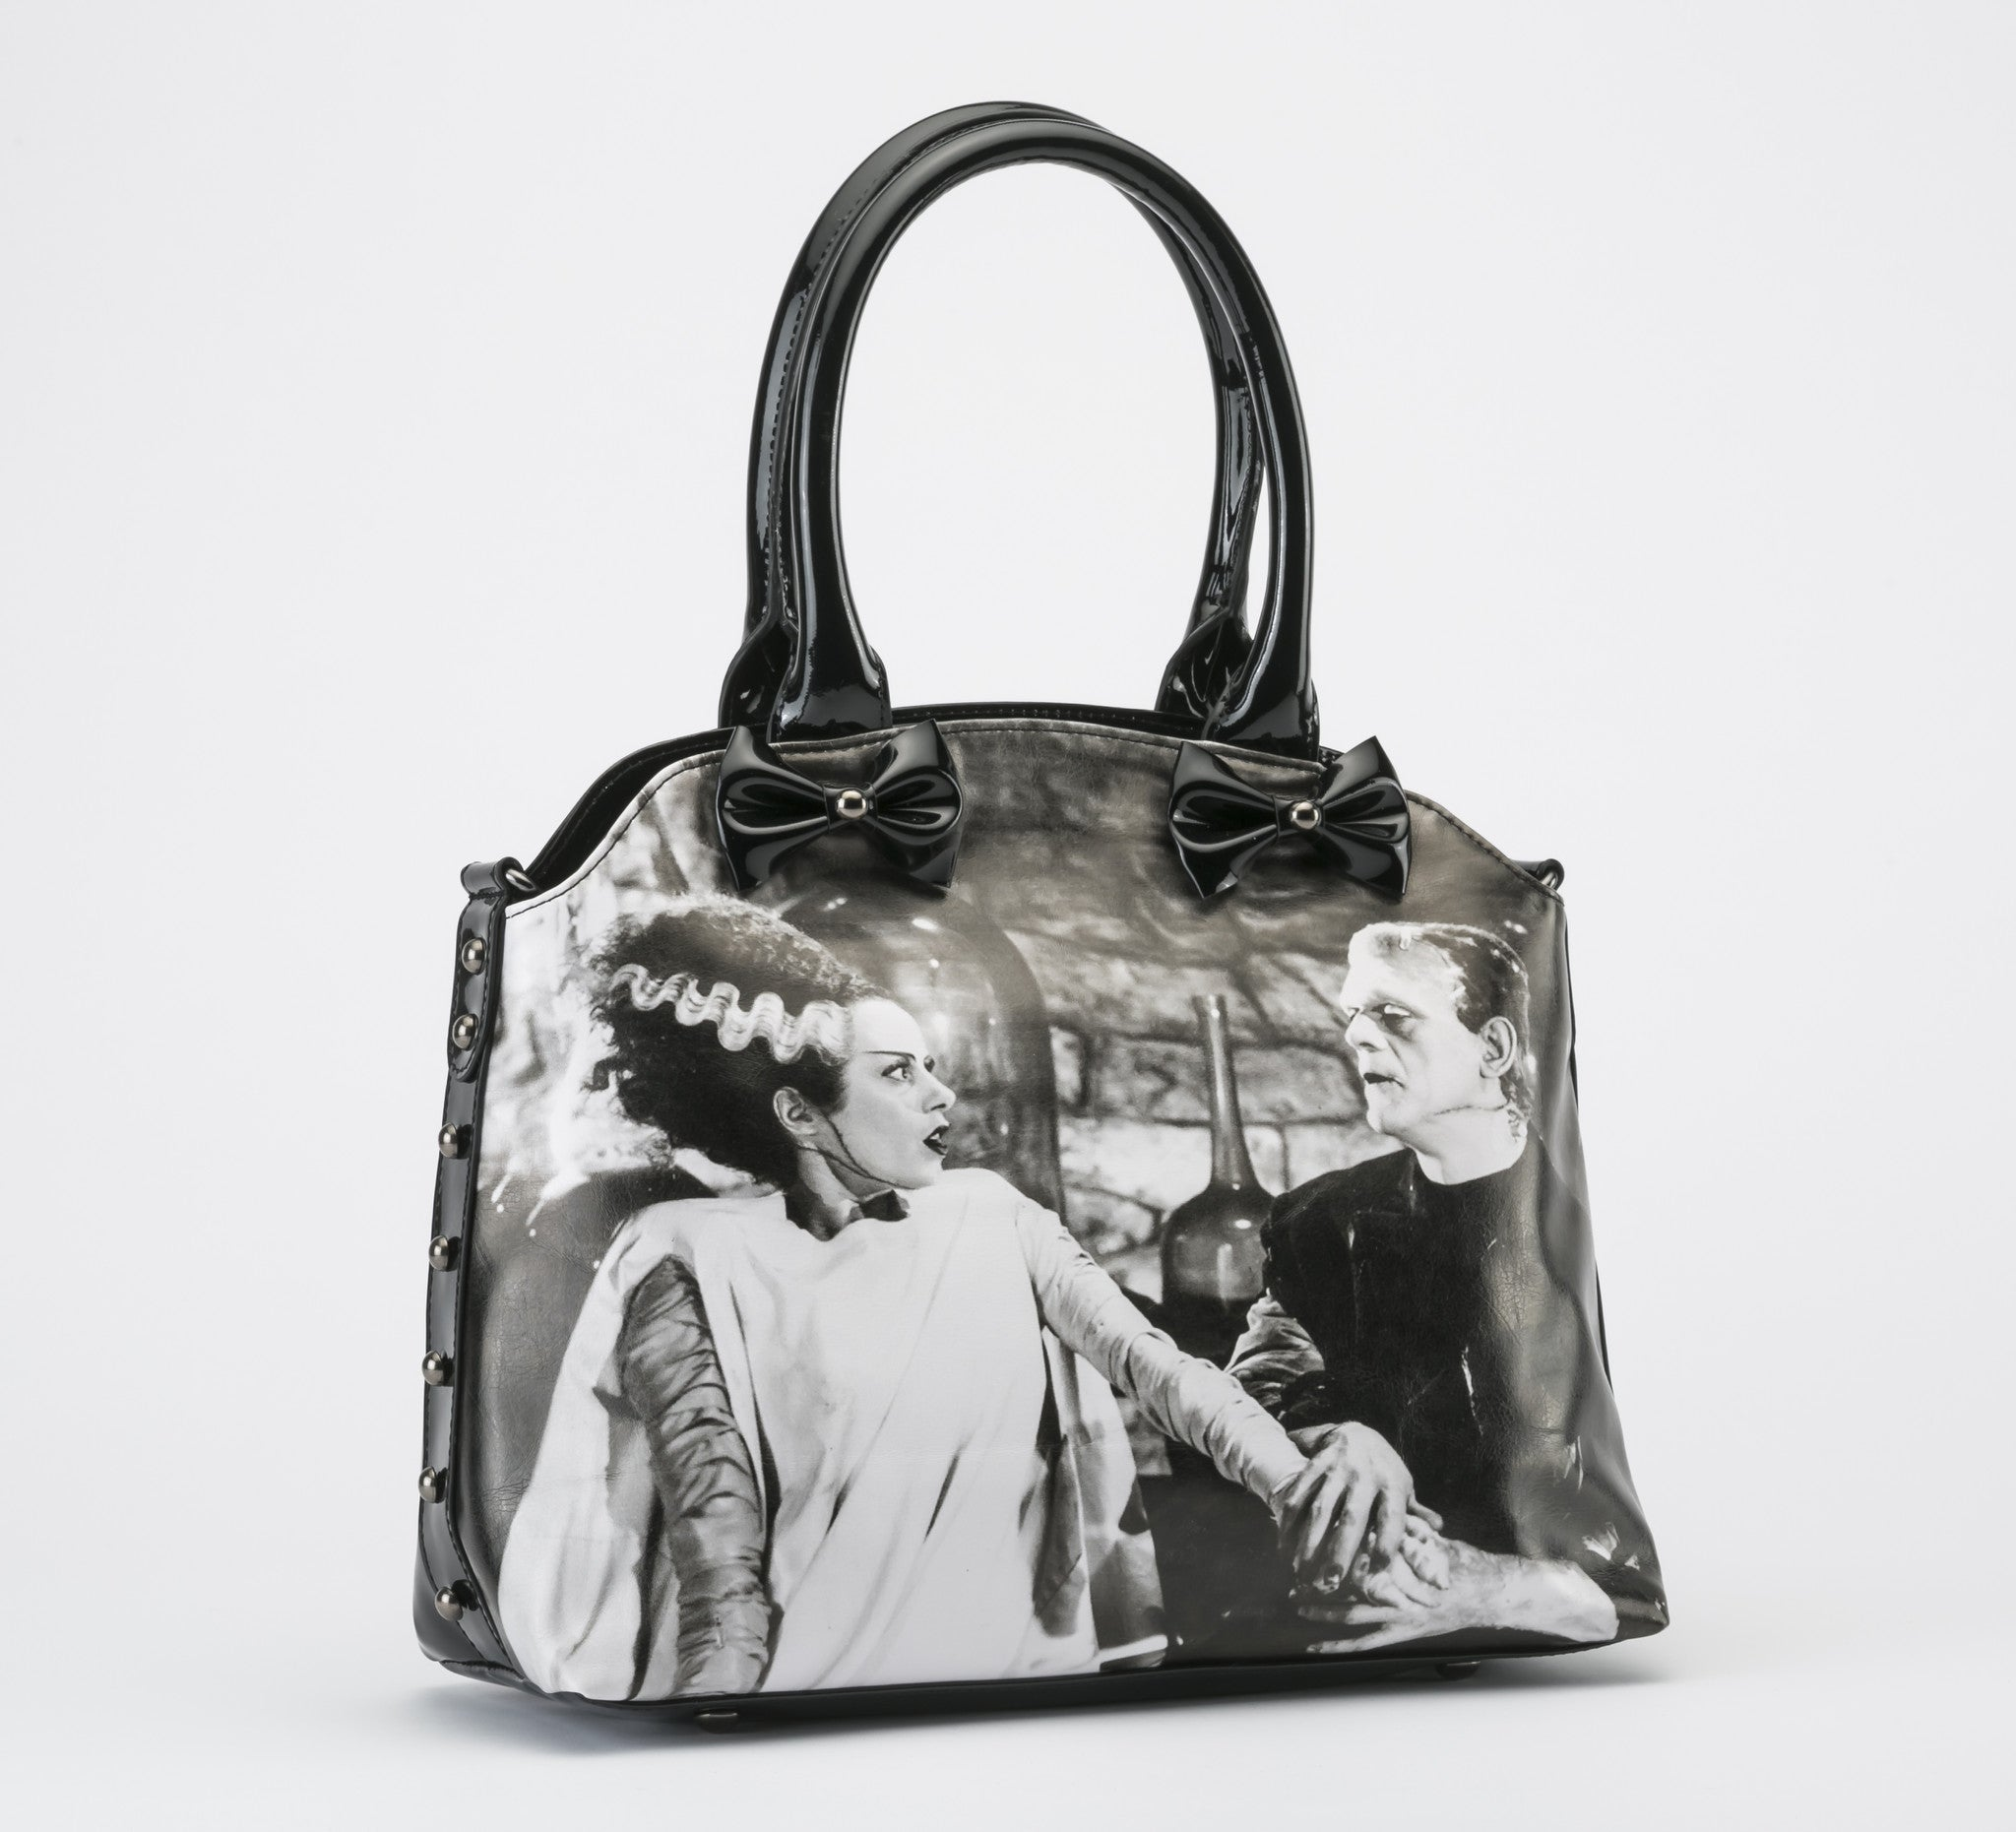 bride of frankenstein handbag